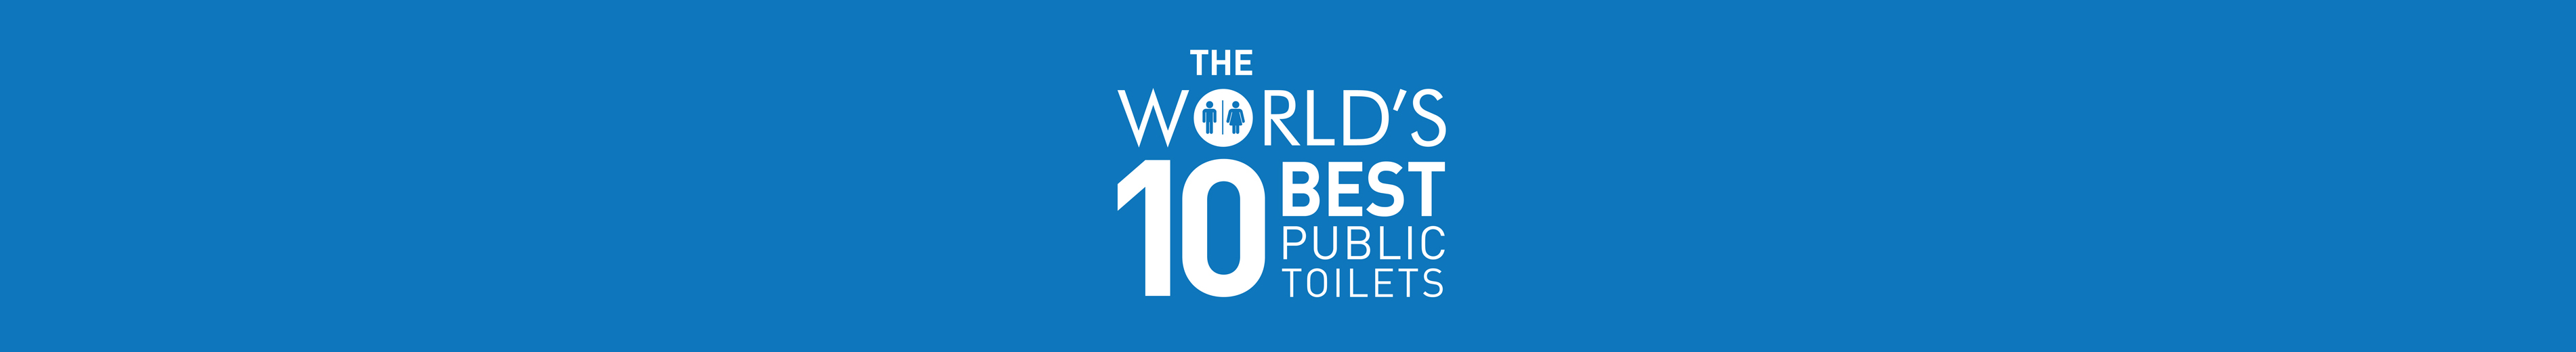 Worlds_Best_Public_Toilets1